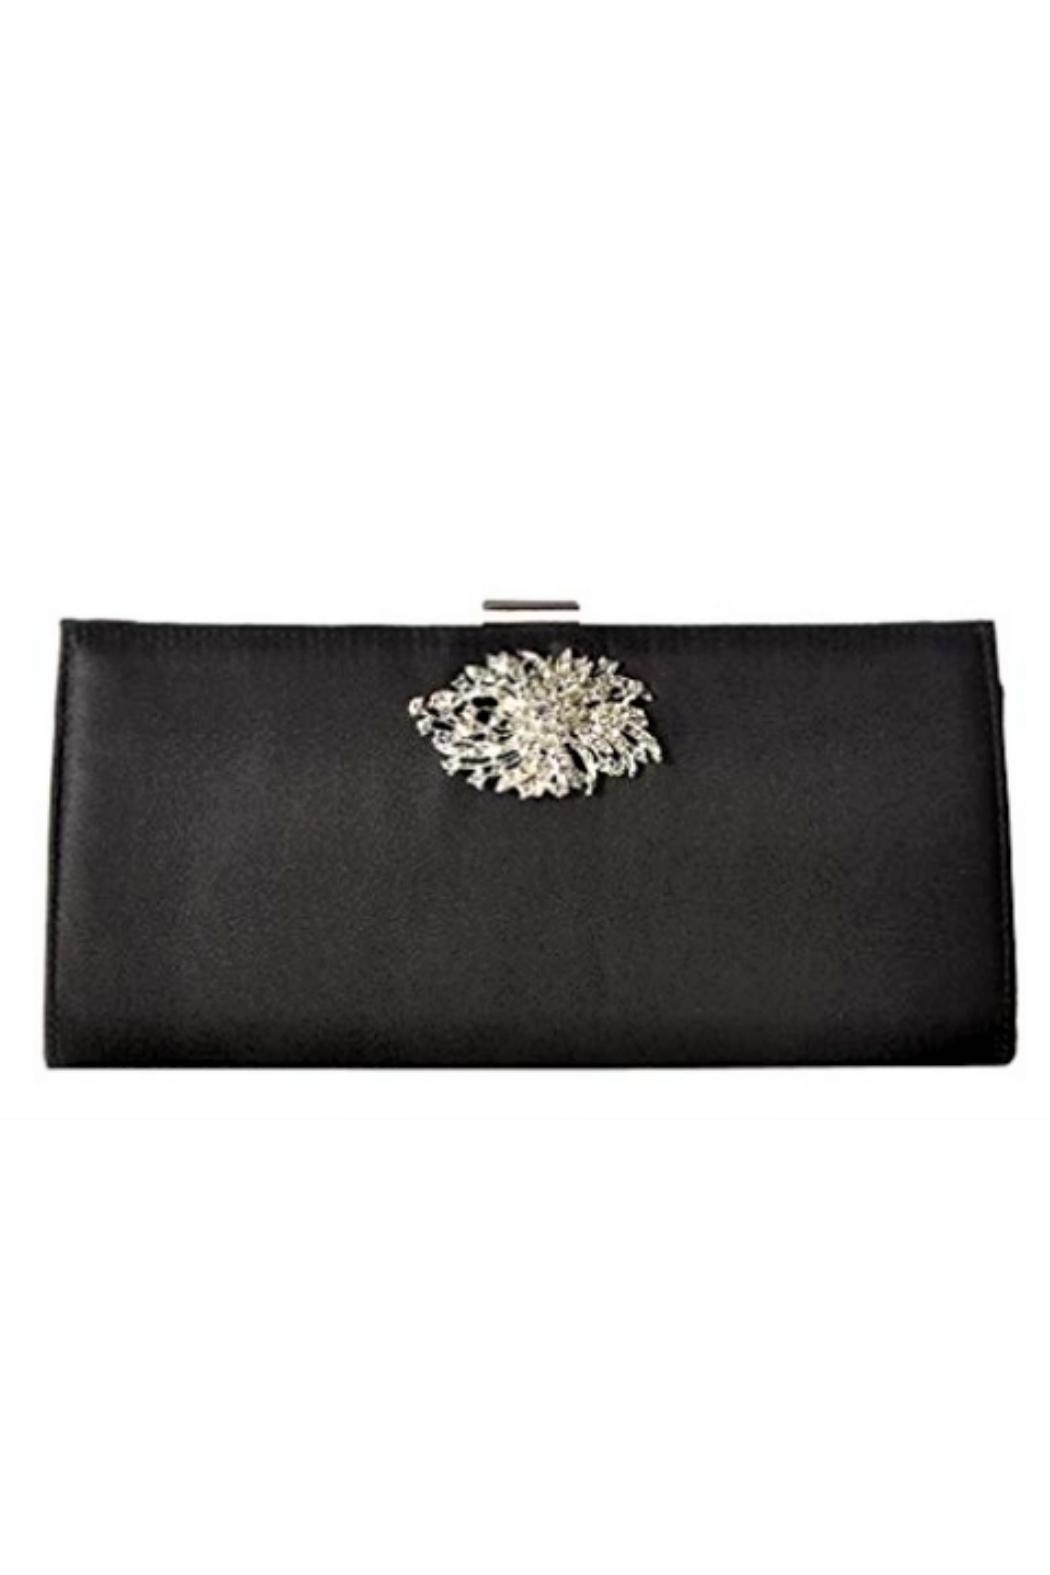 Adrianna Papell Black Stacee Clutch - Main Image